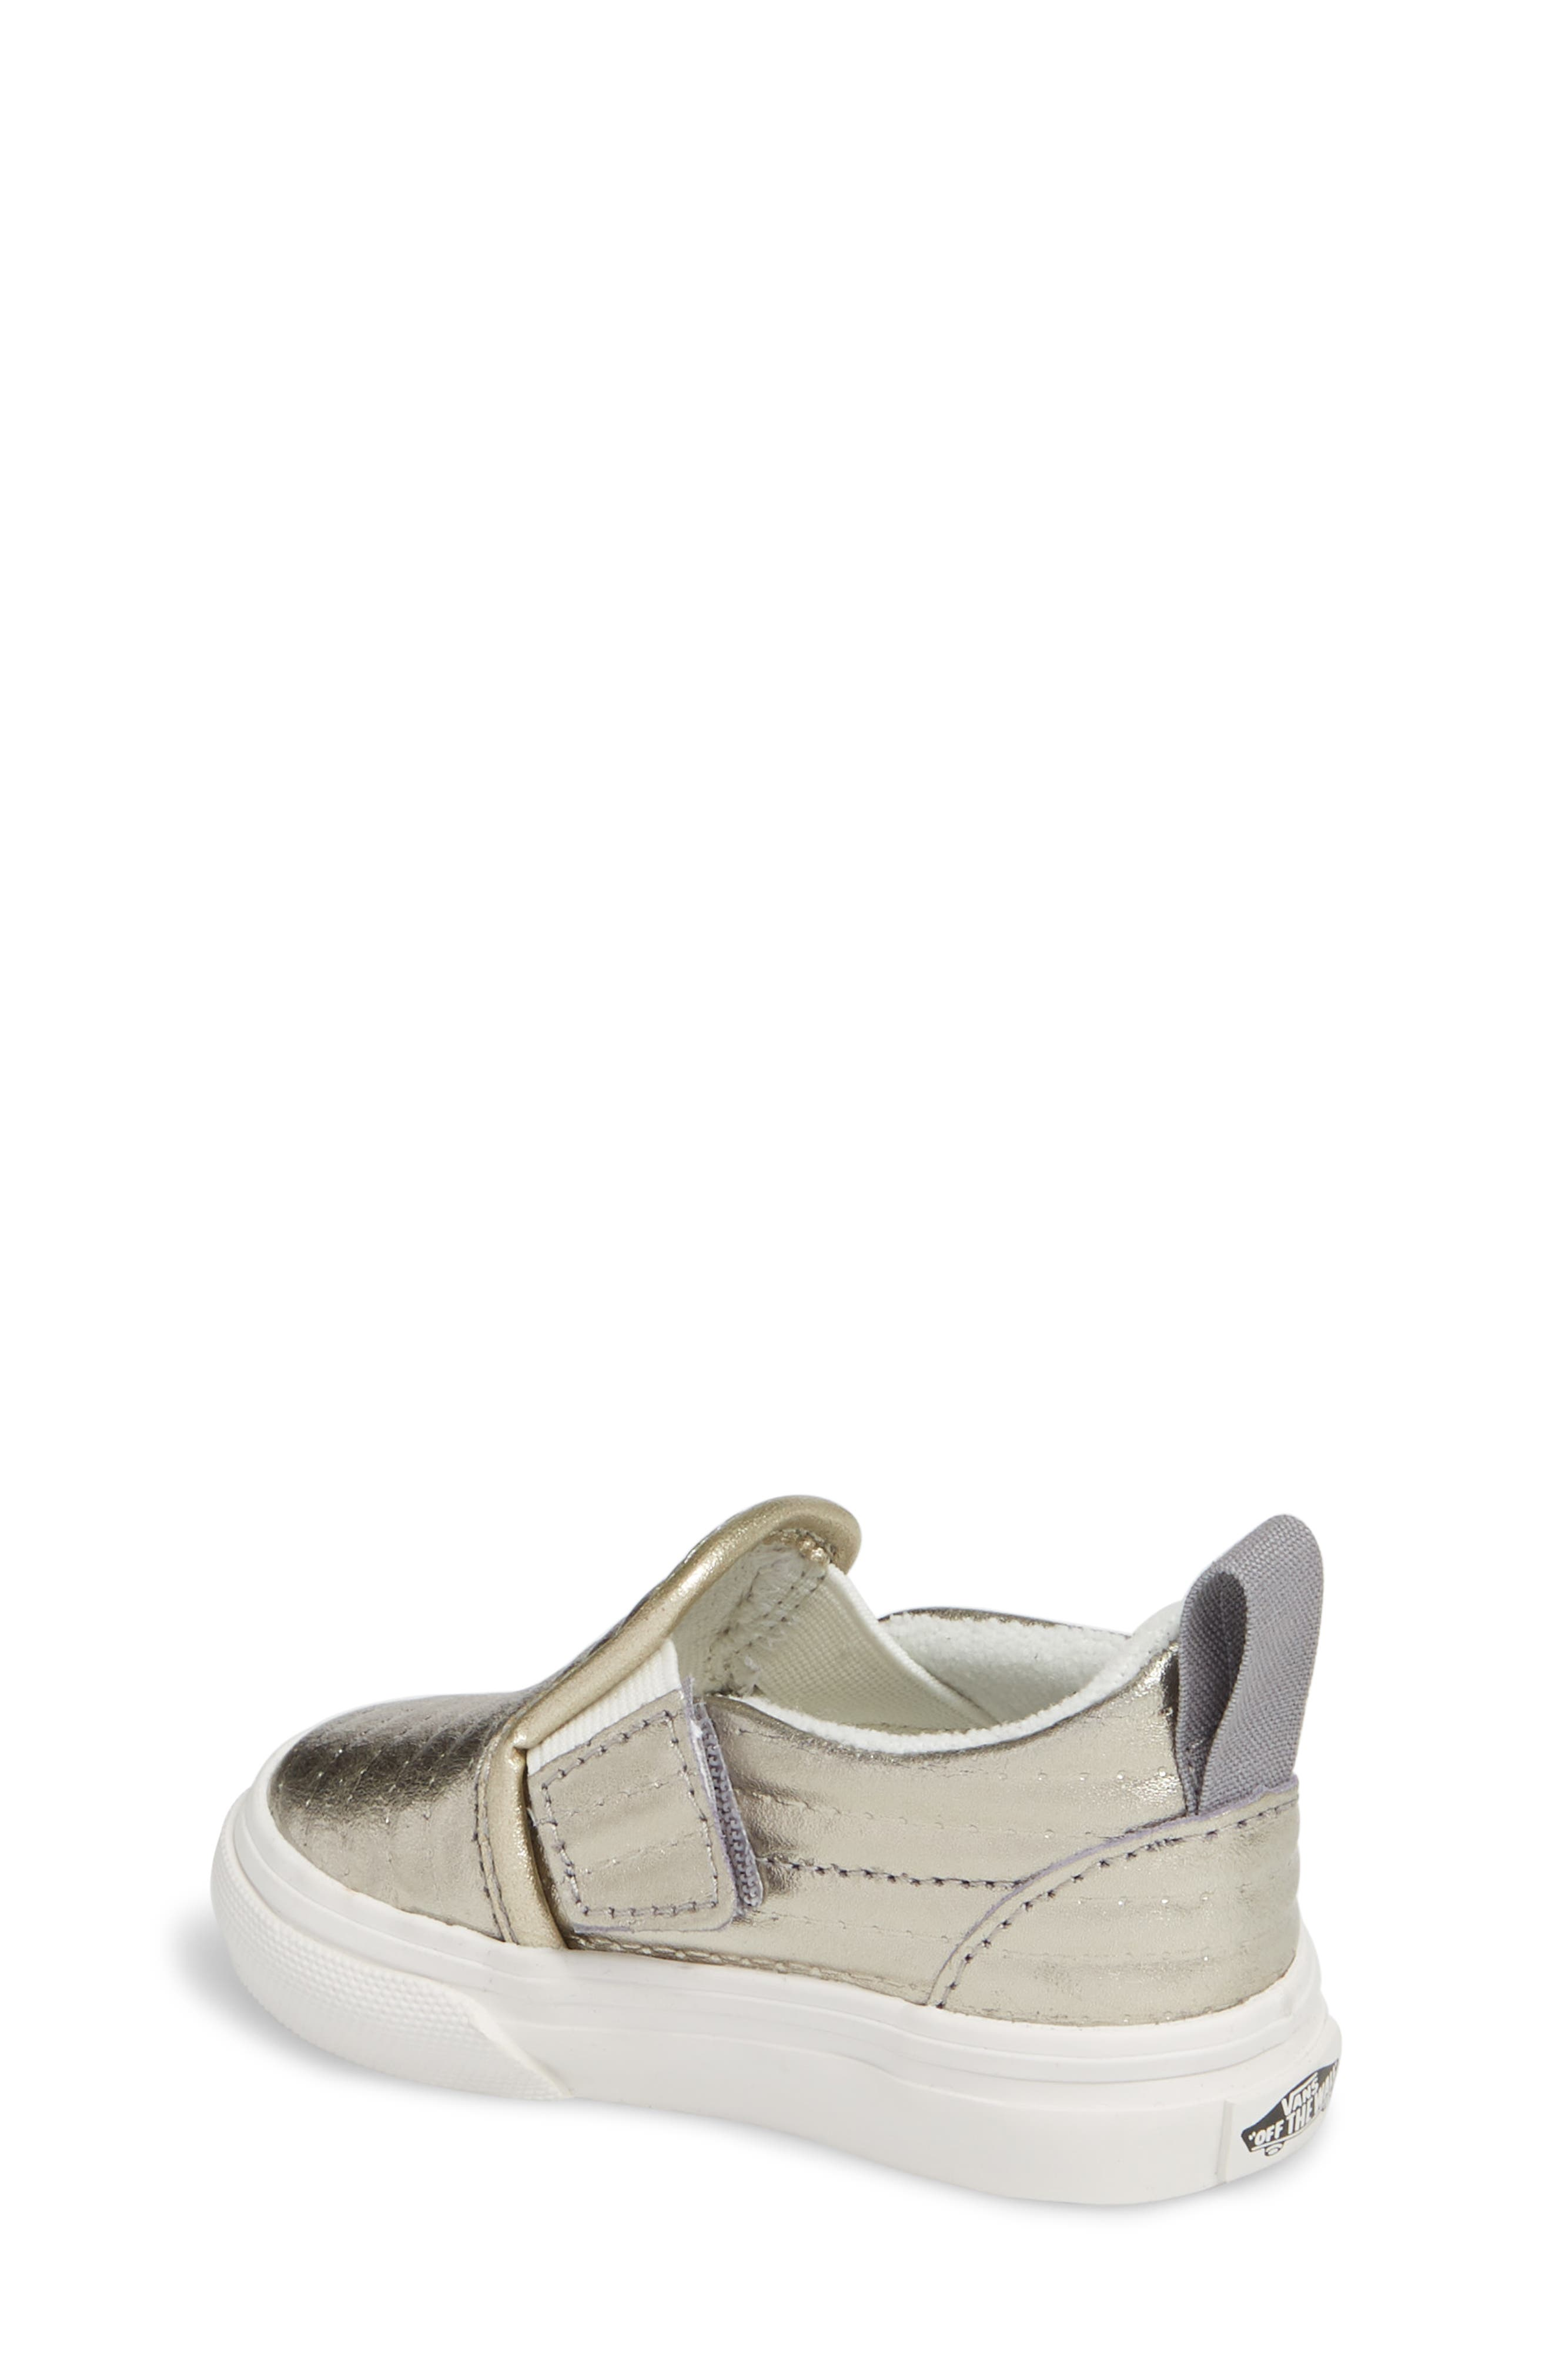 Slip-On V Crib Shoe,                             Alternate thumbnail 2, color,                             041